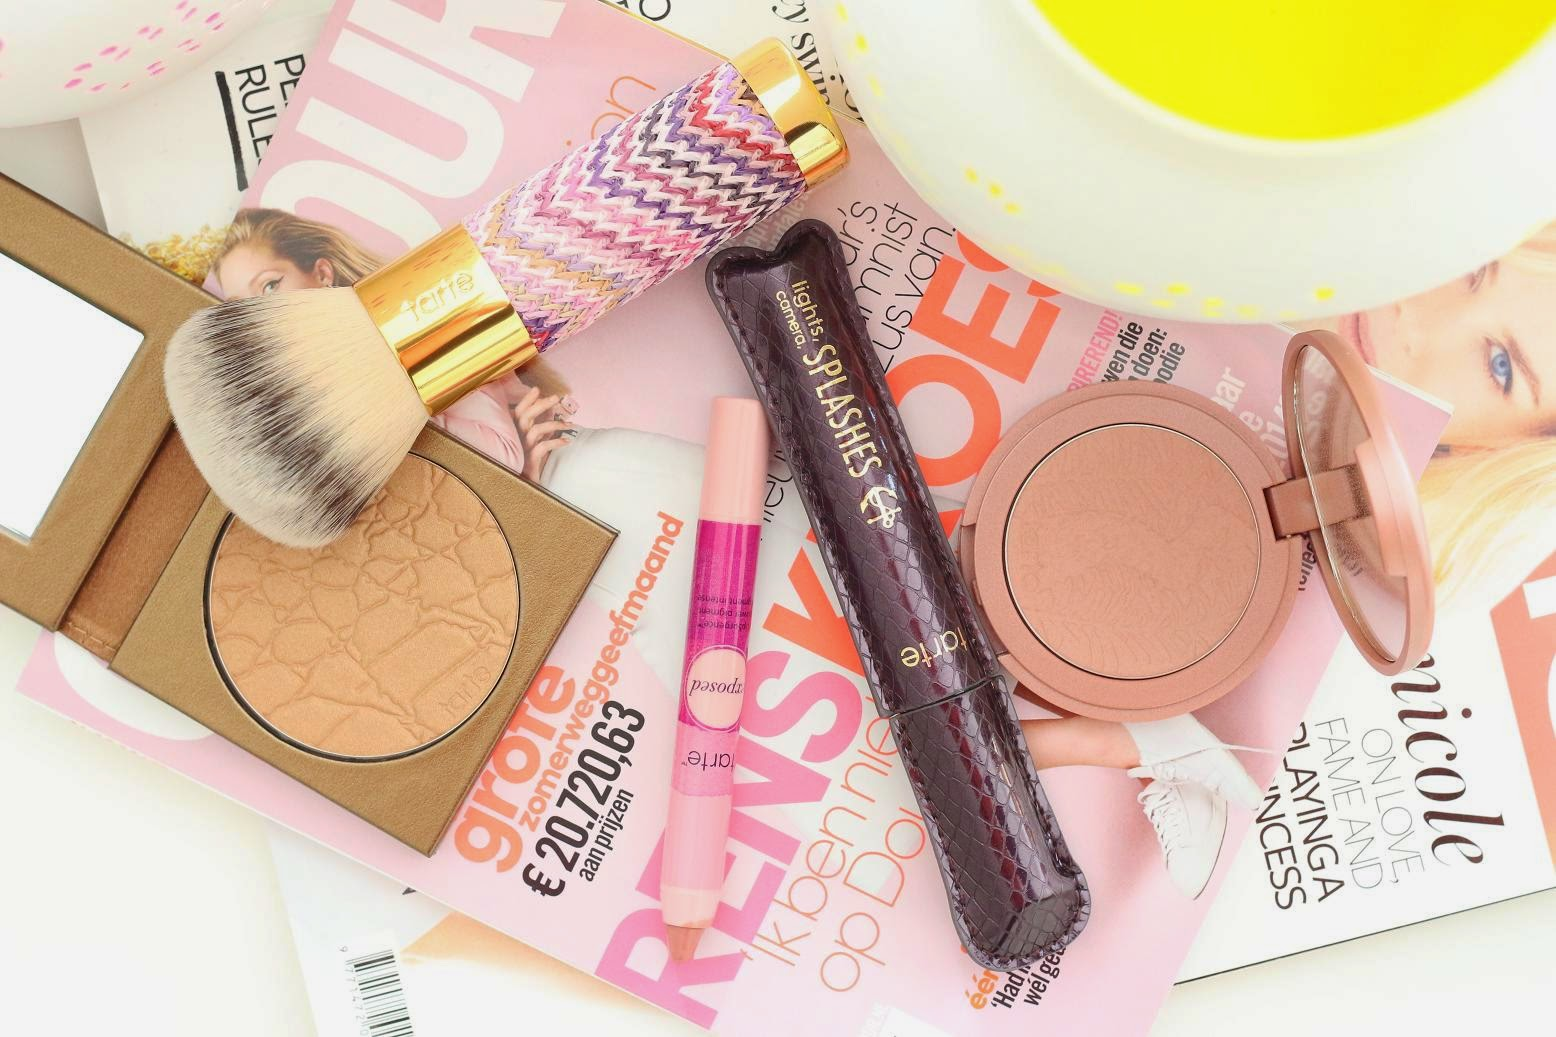 Tarte Summer Essentials set